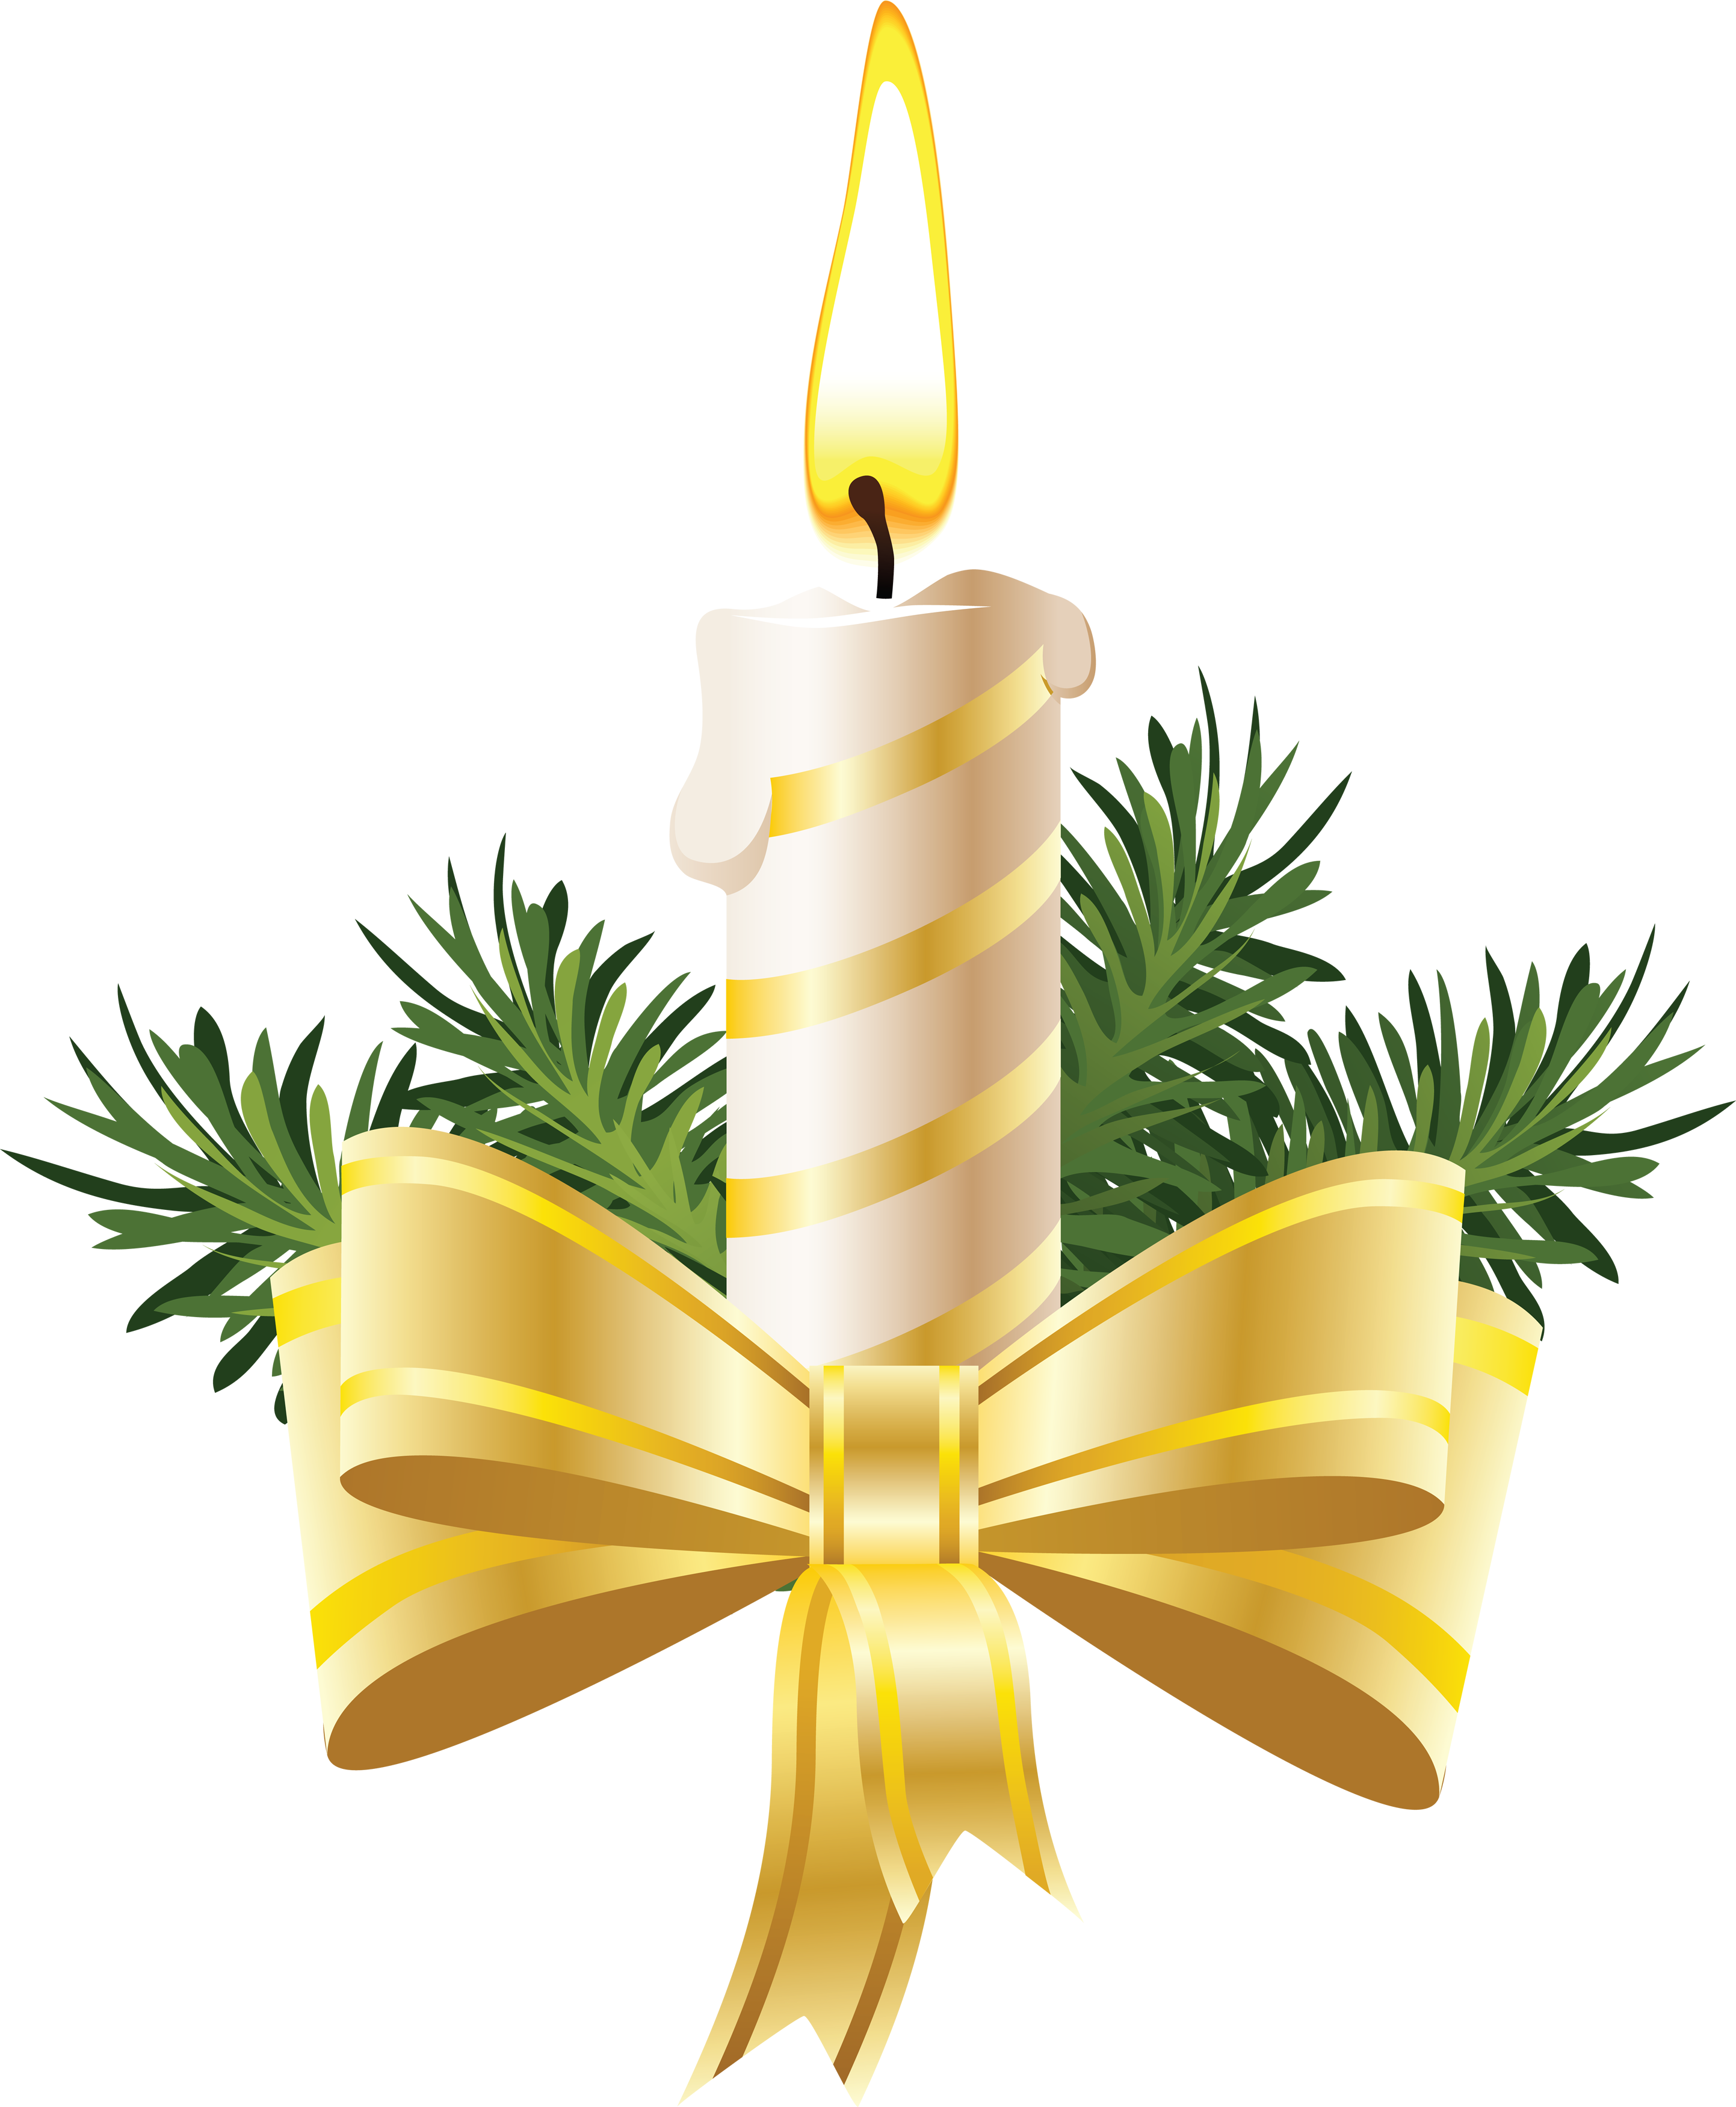 Christmas Candle's PNG Image - PurePNG   Free transparent ...